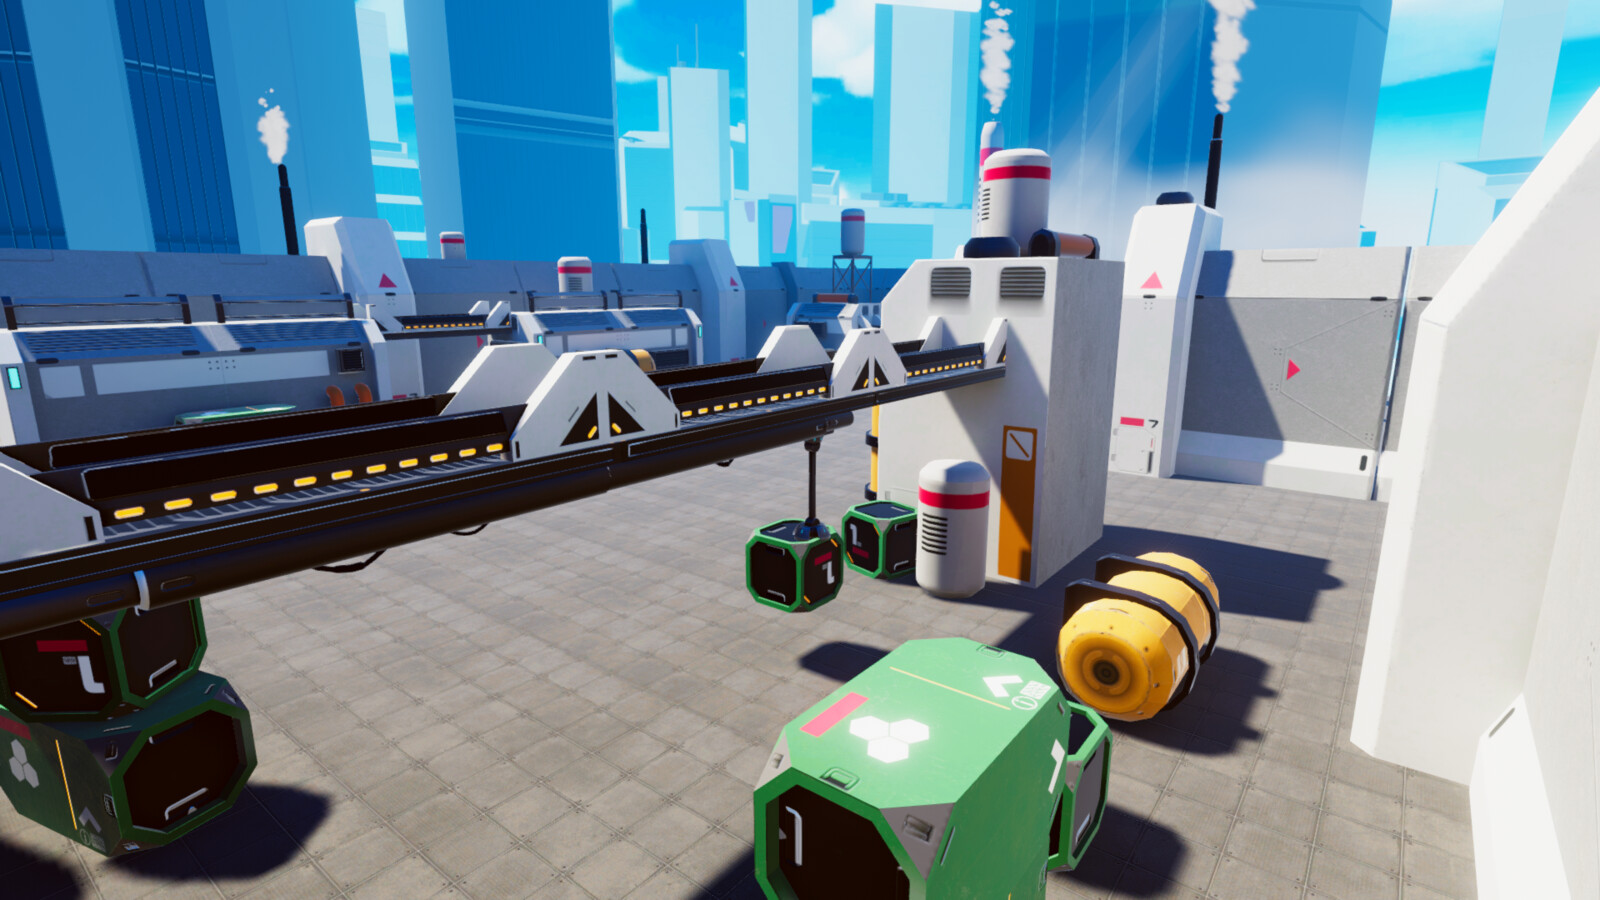 VR/Mobile stylized industrial complex 4